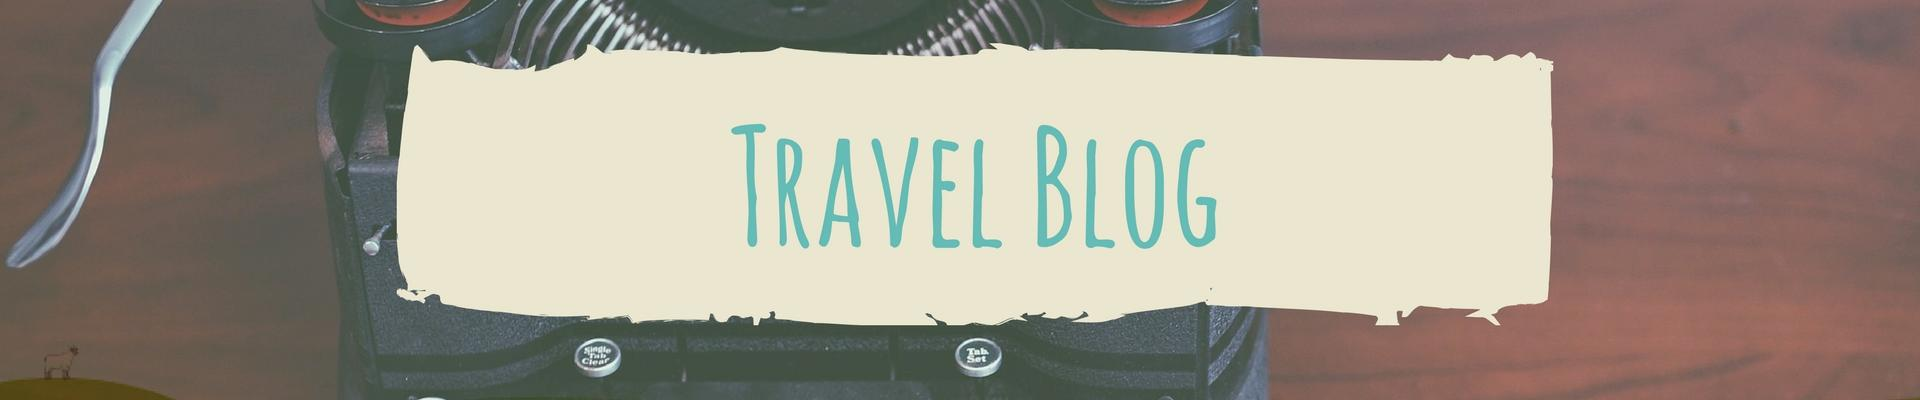 Two Travel The World - Travel Blog